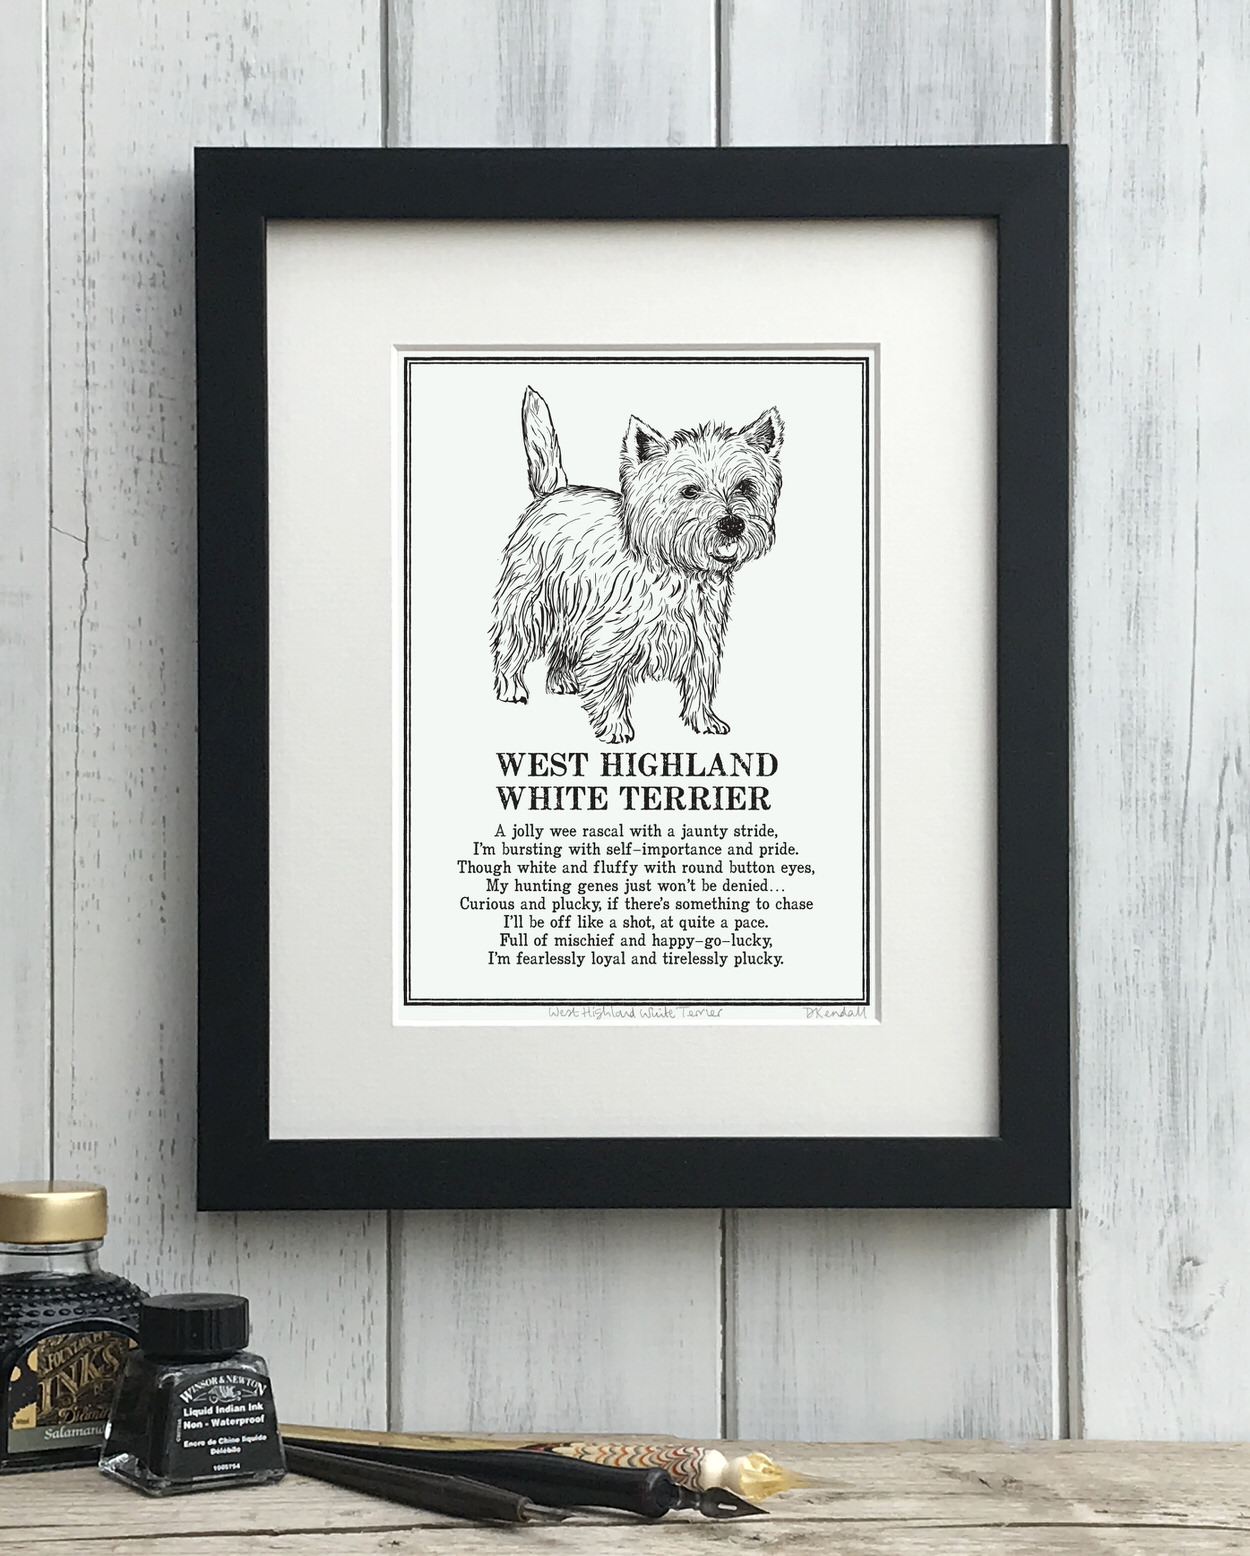 West Highland White Terrier Doggerel Print